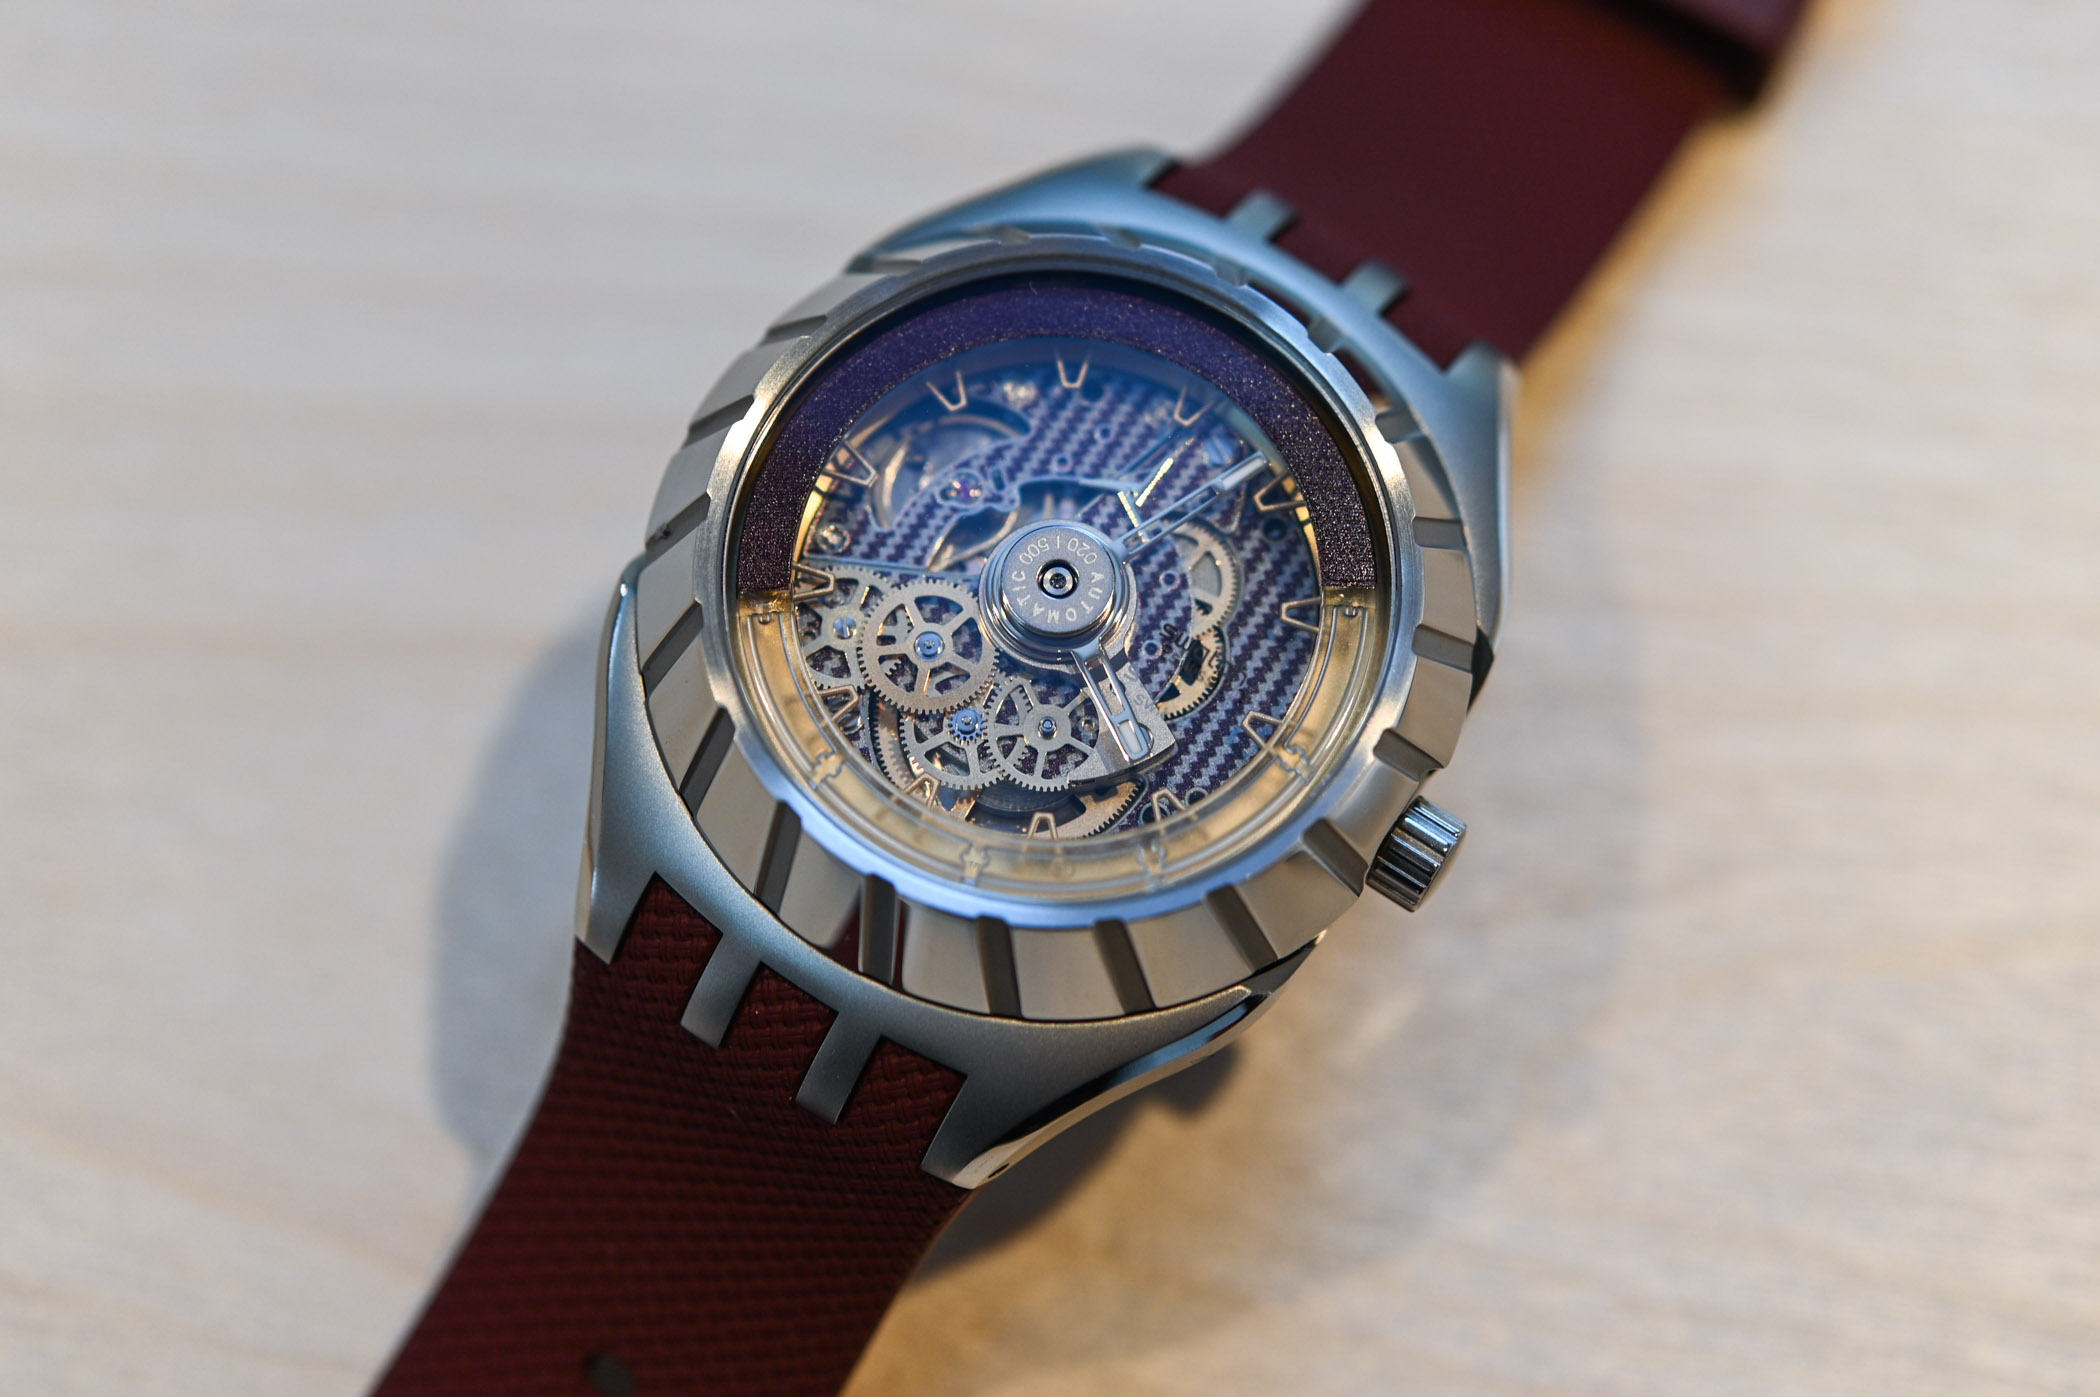 Swatch Flymagic First Watch with Nivachron Hairspring - 41